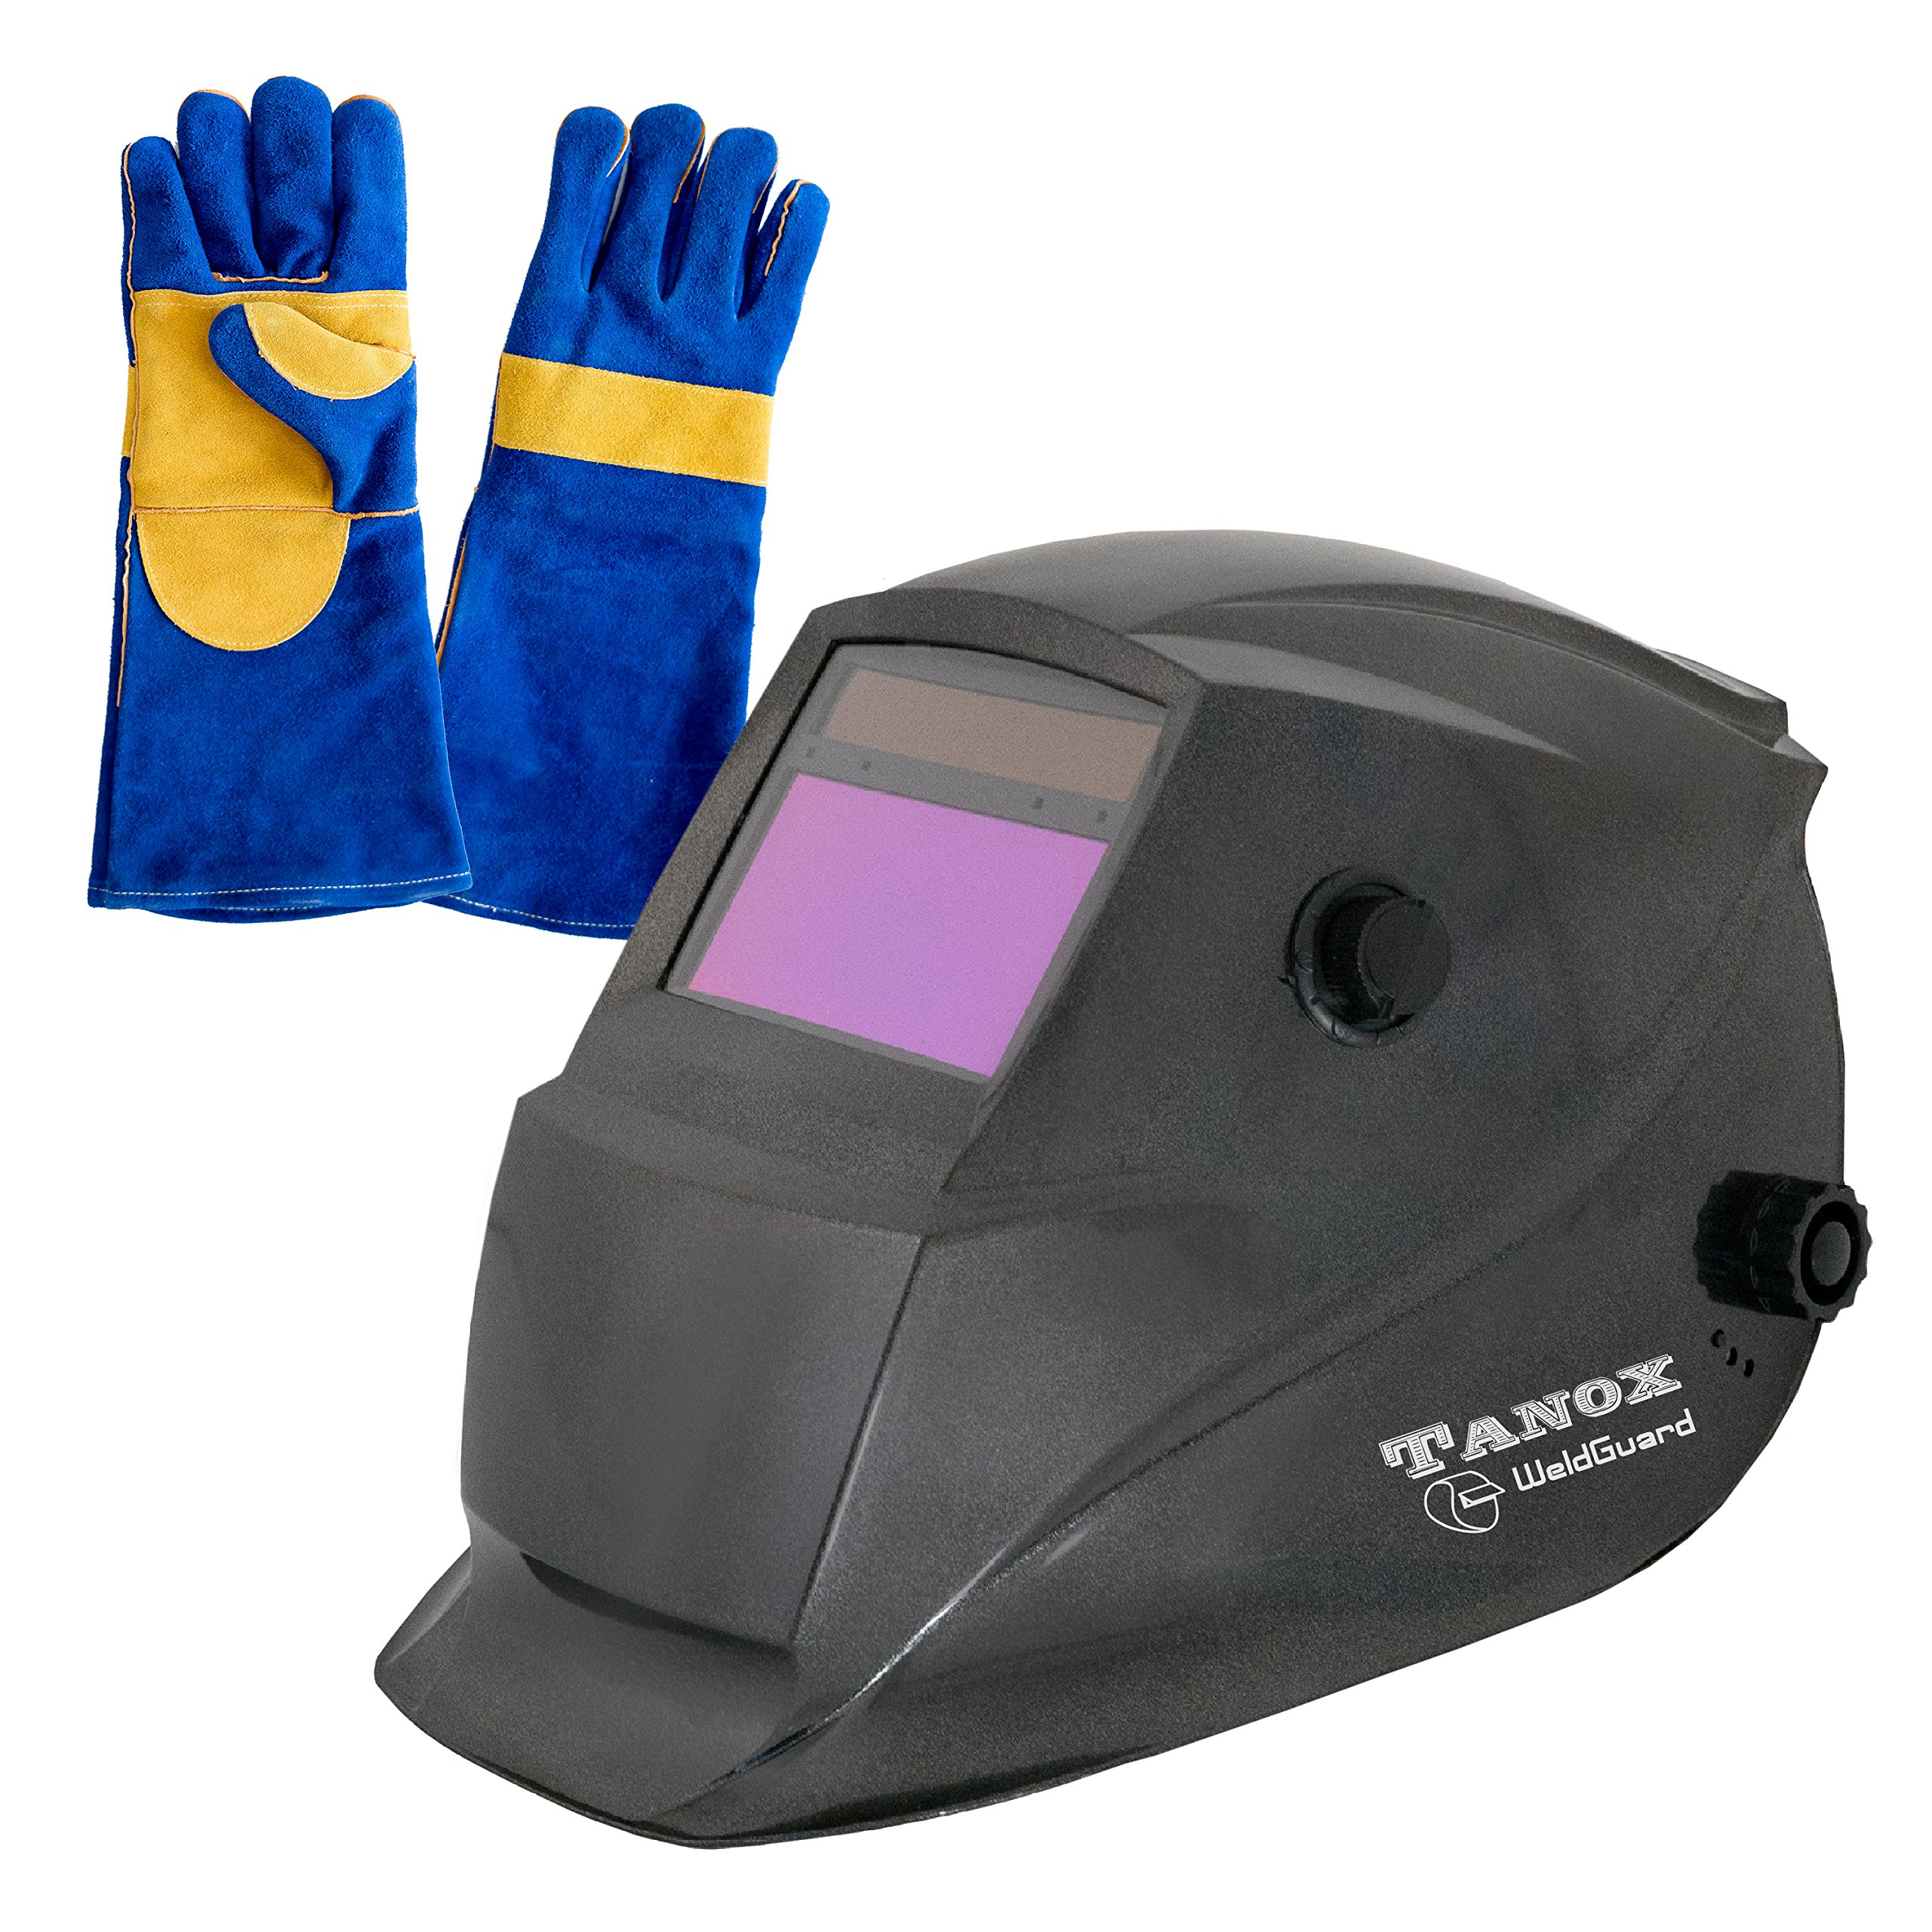 Tanox Auto Darkening Solar Powered Welding Helmet ADF-206S: Shade Lens Plus 16 Inch Kevlar Fire Retardant Welding Gloves Adjustable Range 4//9-13 Grinding 0000 Tig Mig MMA